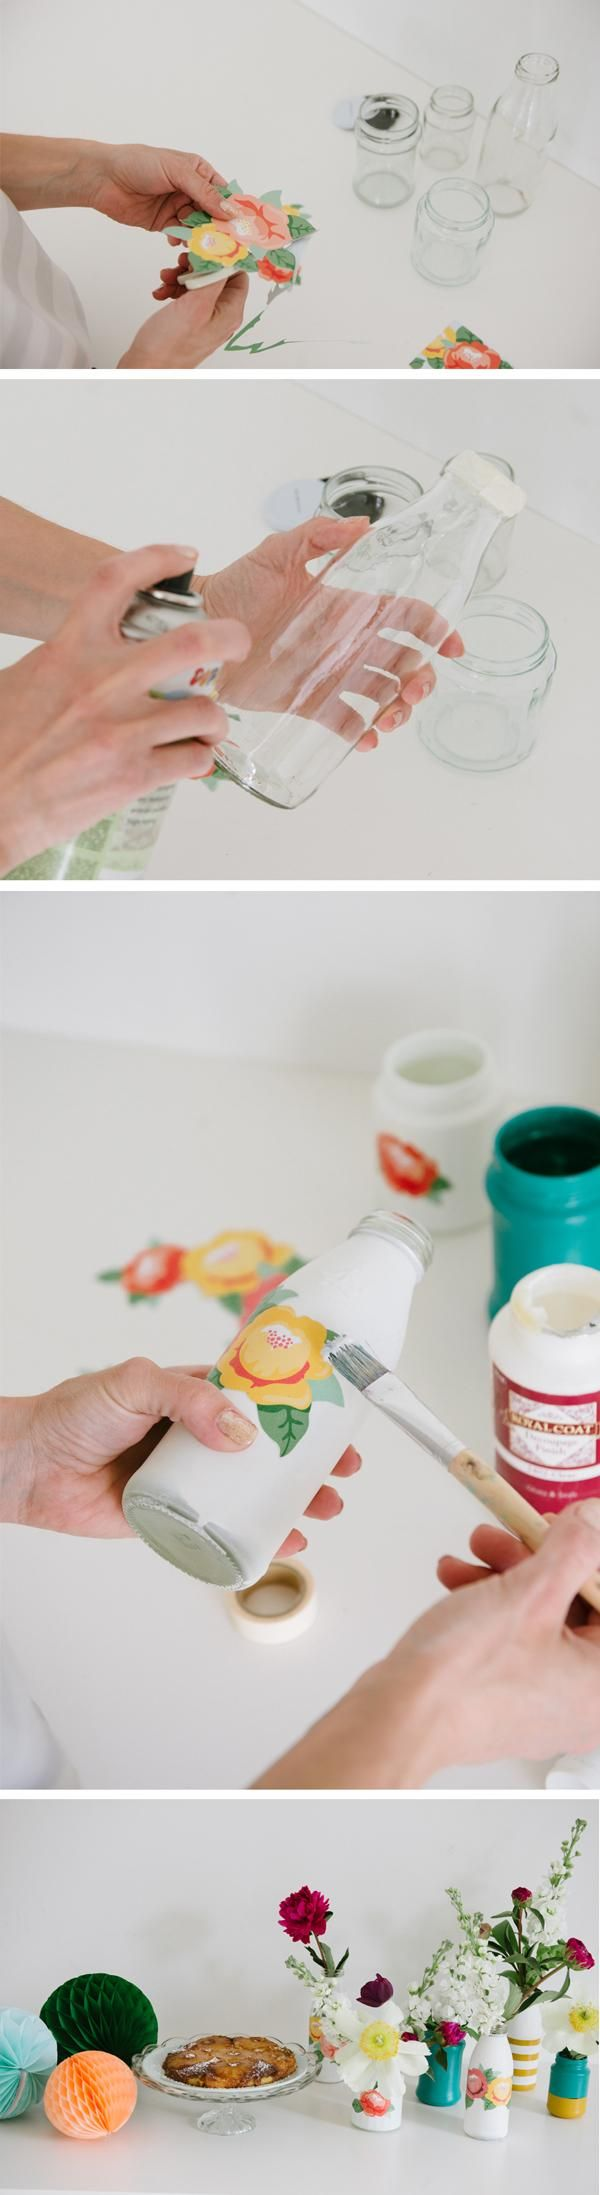 Use Mod Podge to add your own floral design to glass vases or recycled bottles with this simple tutorial. This DIY project is a fun way to update your home's accessories and makes a great hostess gift when paired with a fresh floral arrangement.